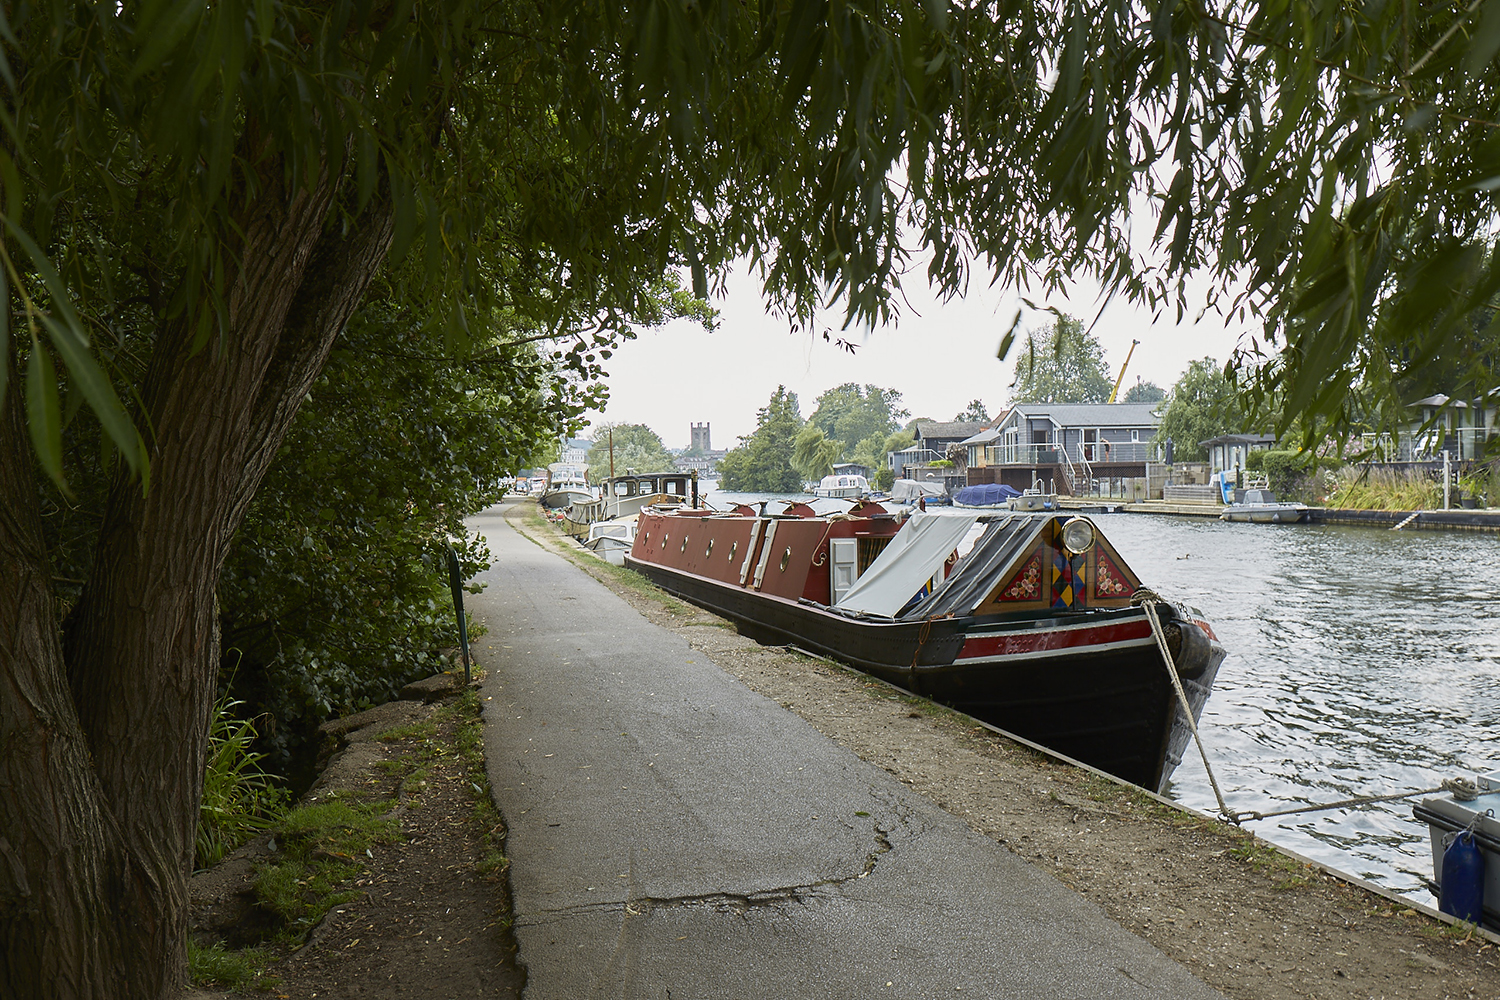 Henley Town Council - boat moored under the cover of trees